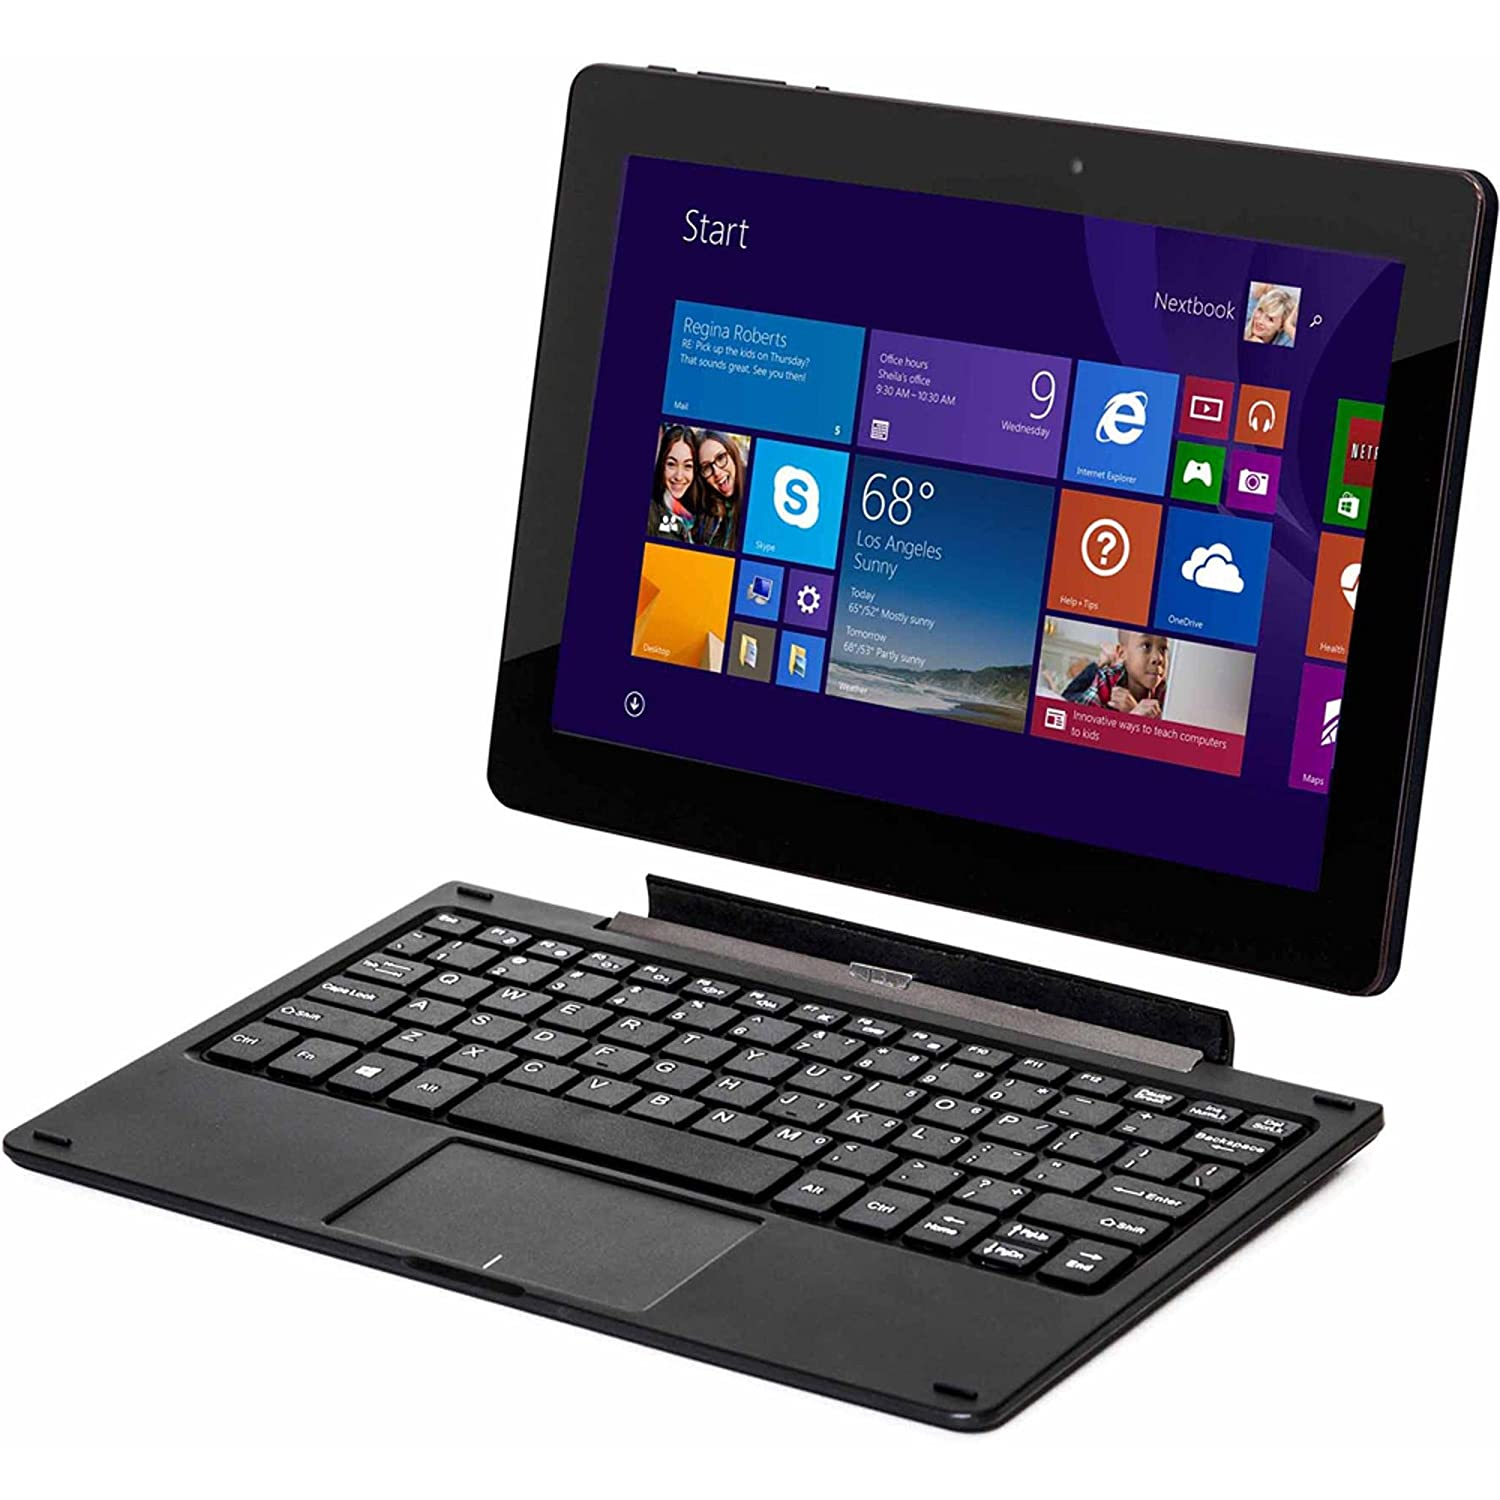 Which is better: tablet or netbook